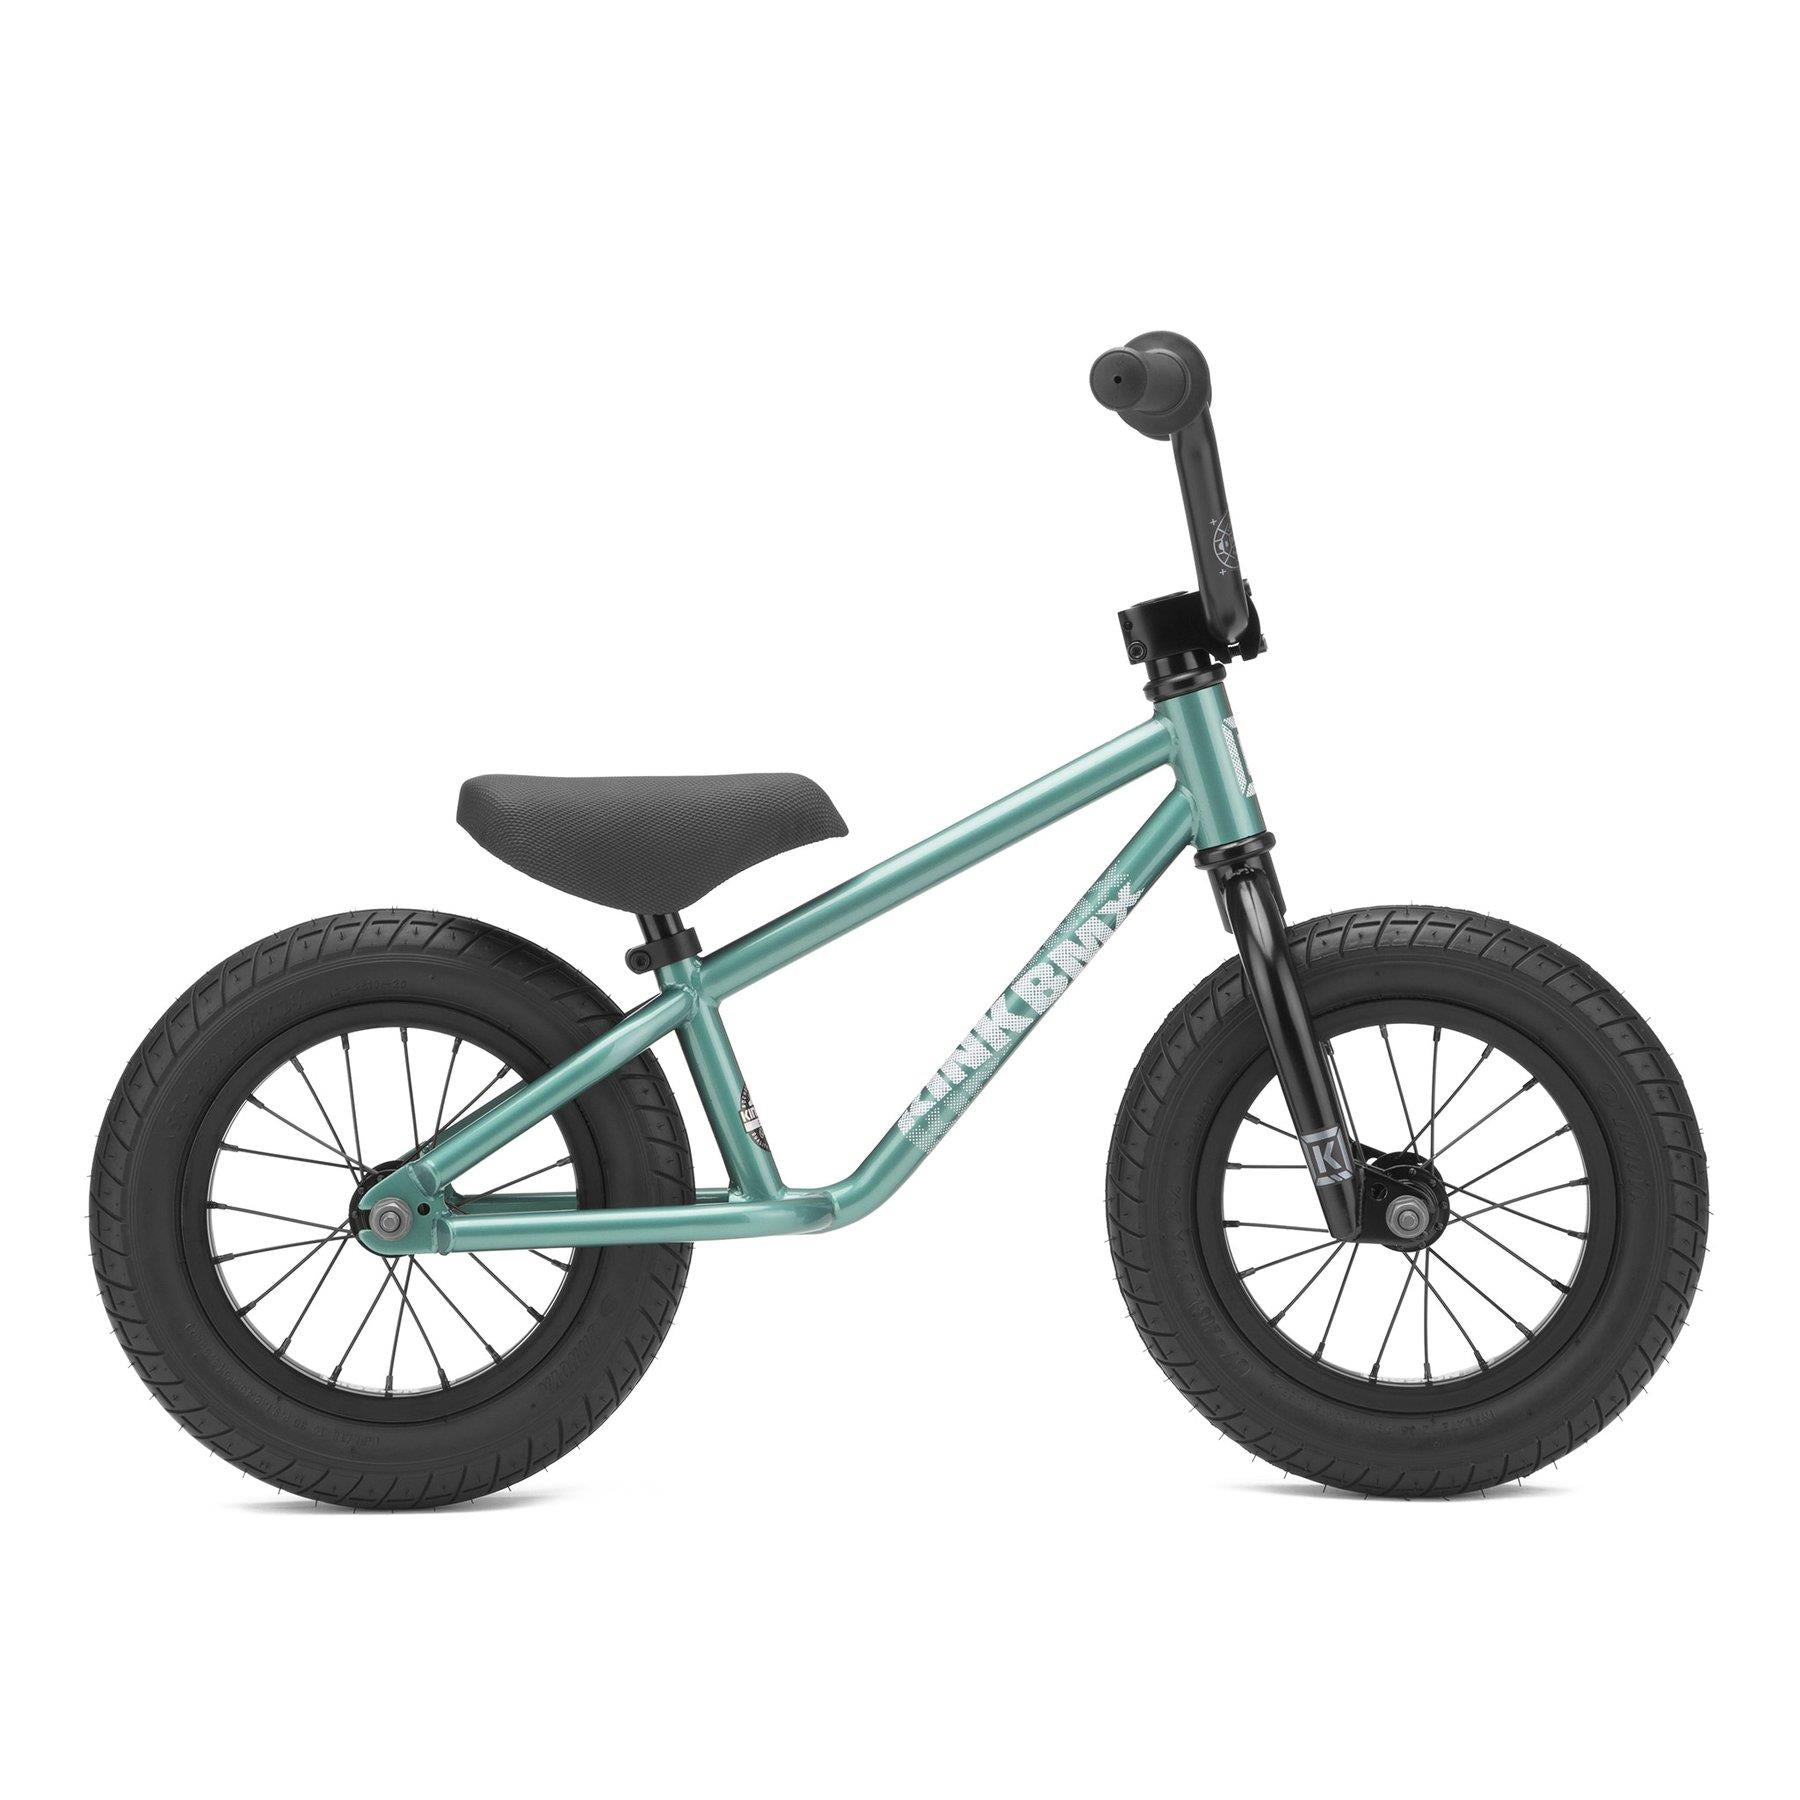 "Kink Coast 12"" BMX Balance Bike 2021"